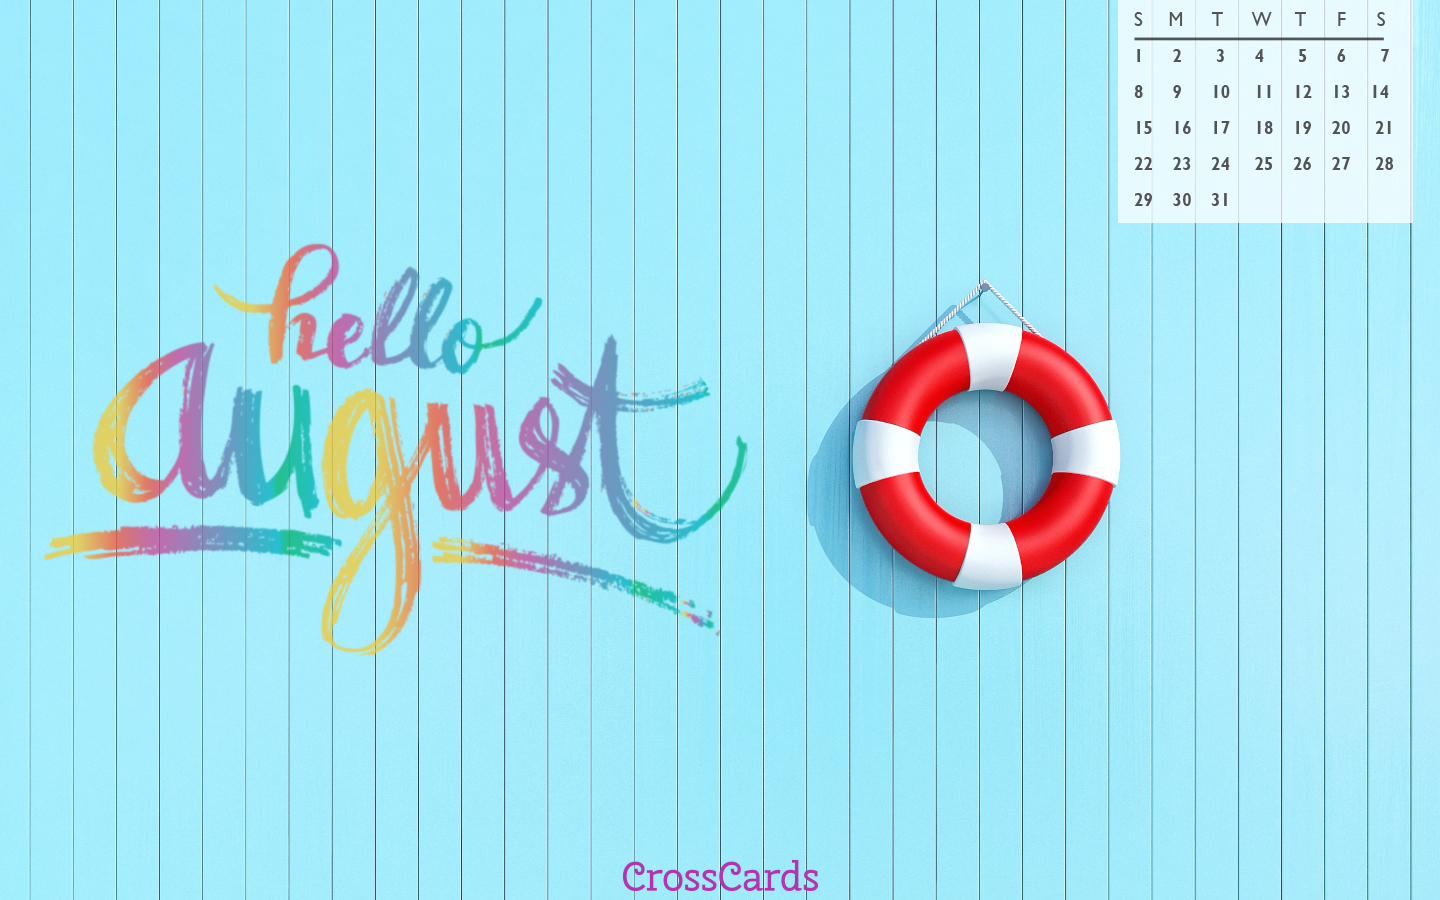 August 2021 - Hello August! mobile phone wallpaper